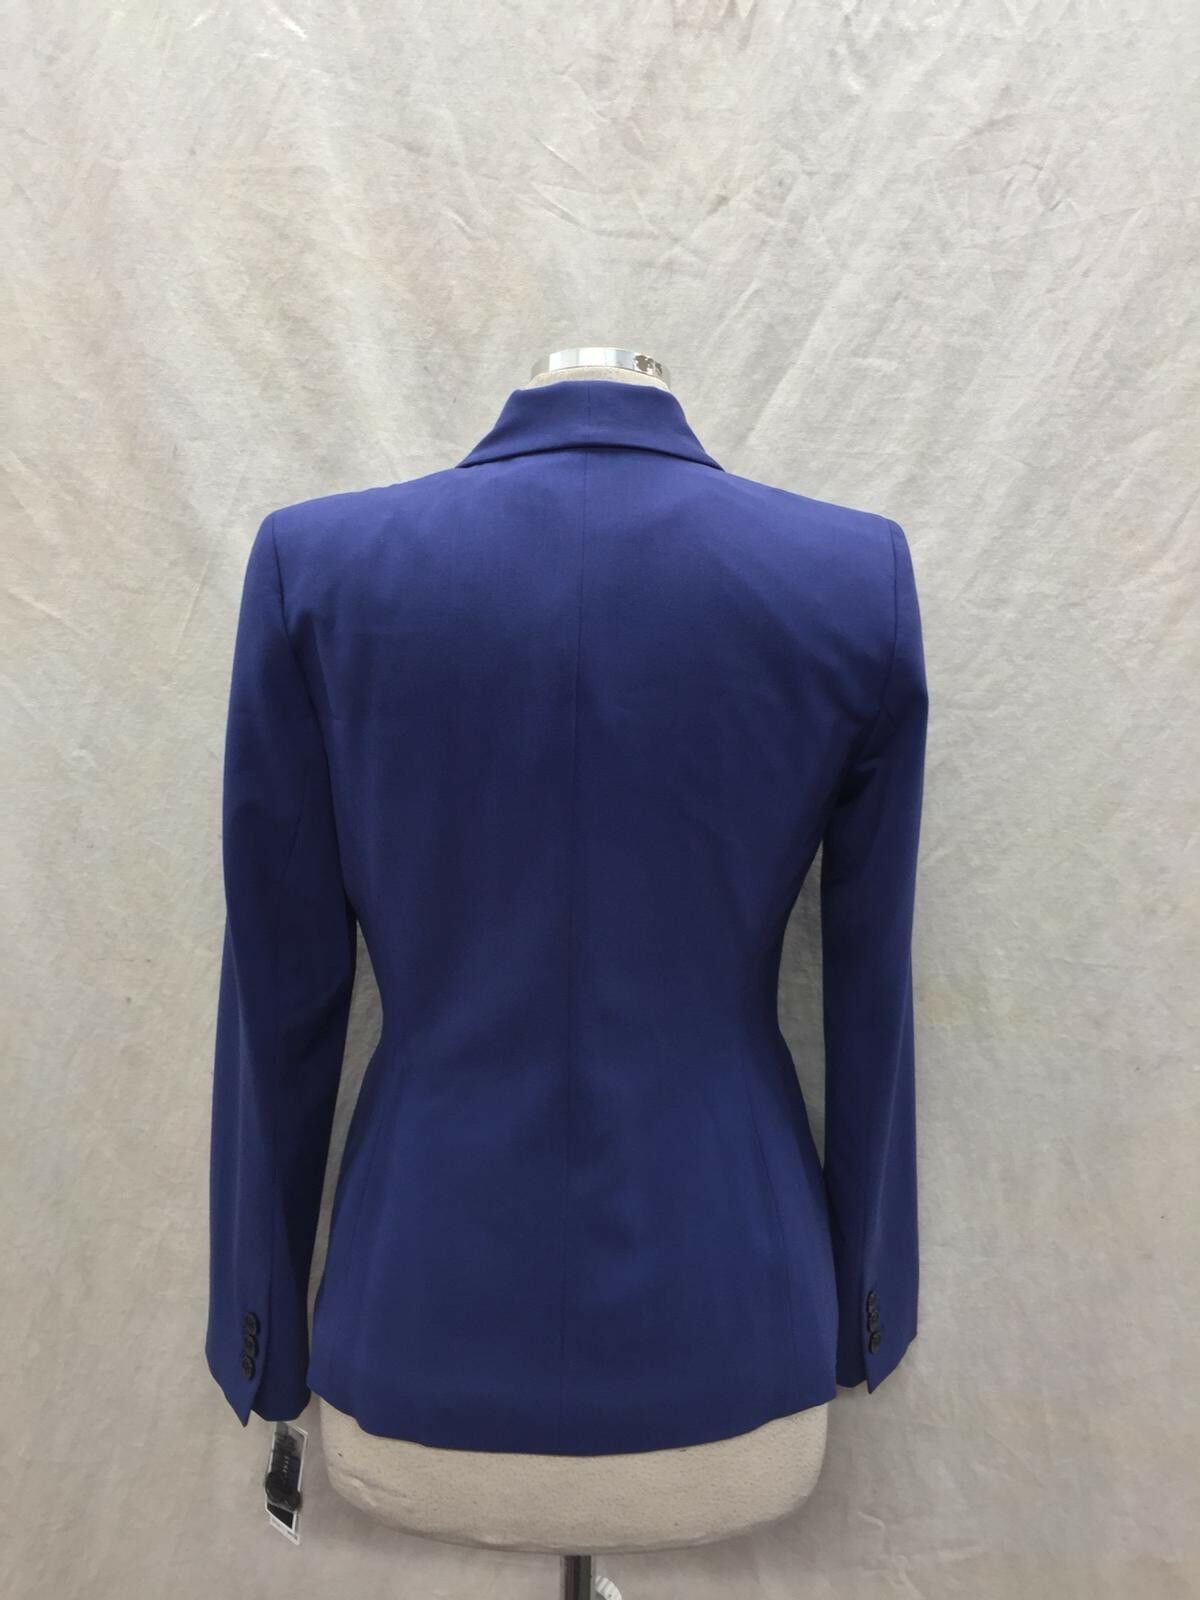 NINE WEST PANT SUIT TANK NOT INCLUDED INCLUDED INCLUDED RETAIL 280 SIZE 8 INSEAM 30  blueE  2cc043